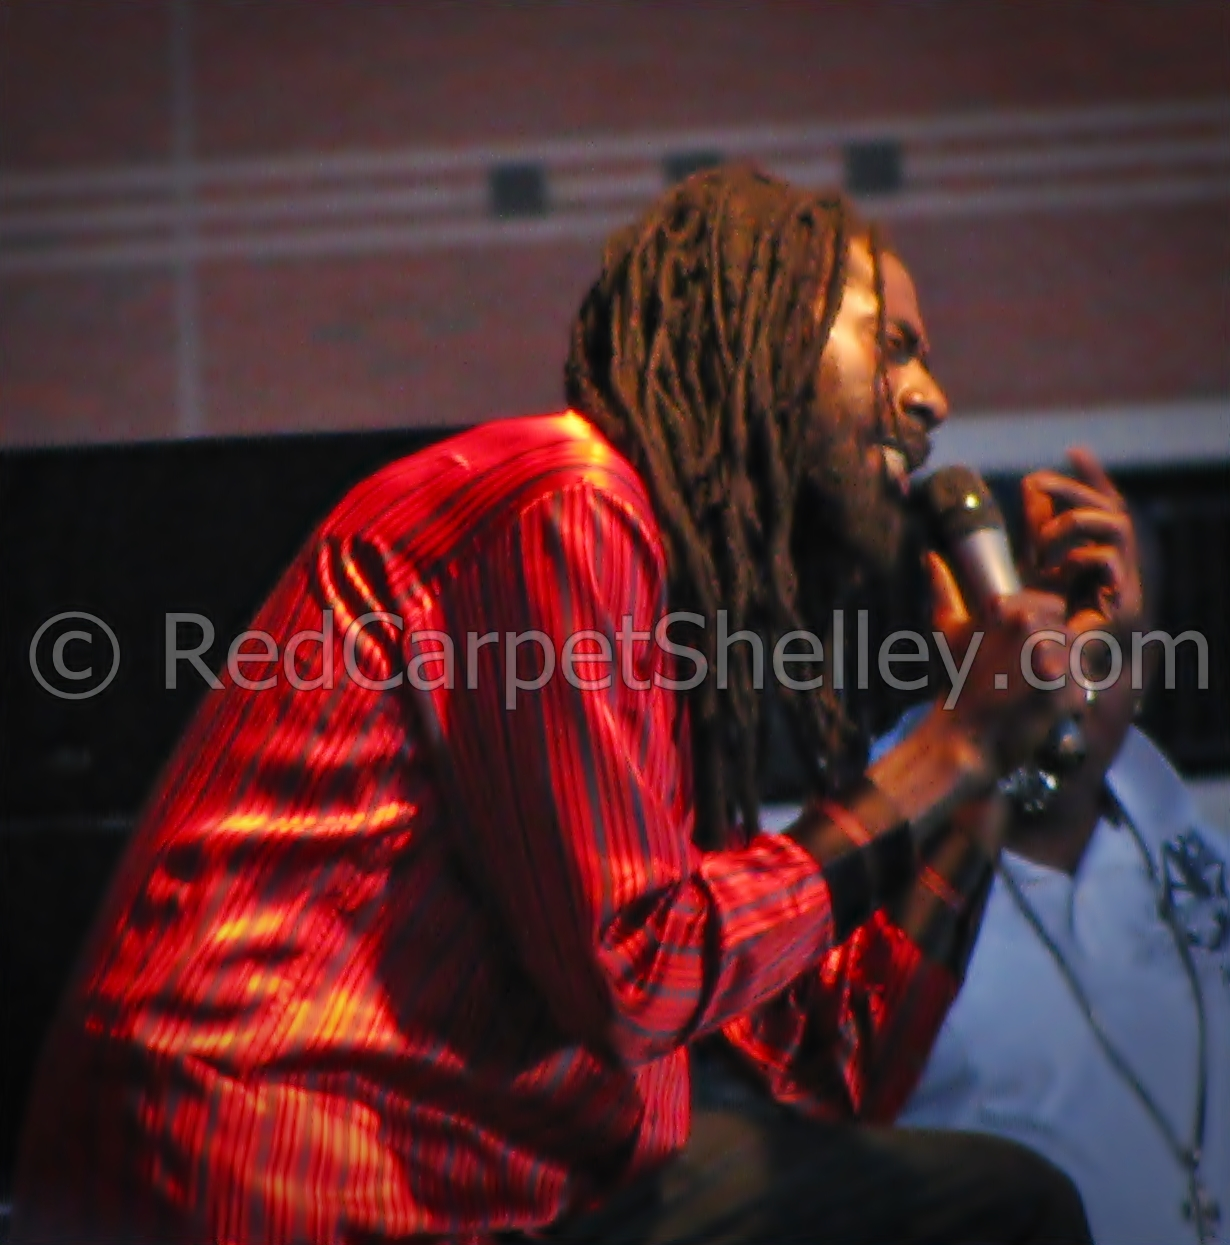 Buju Banton  PHOTO:  Redcarpetshelley.com